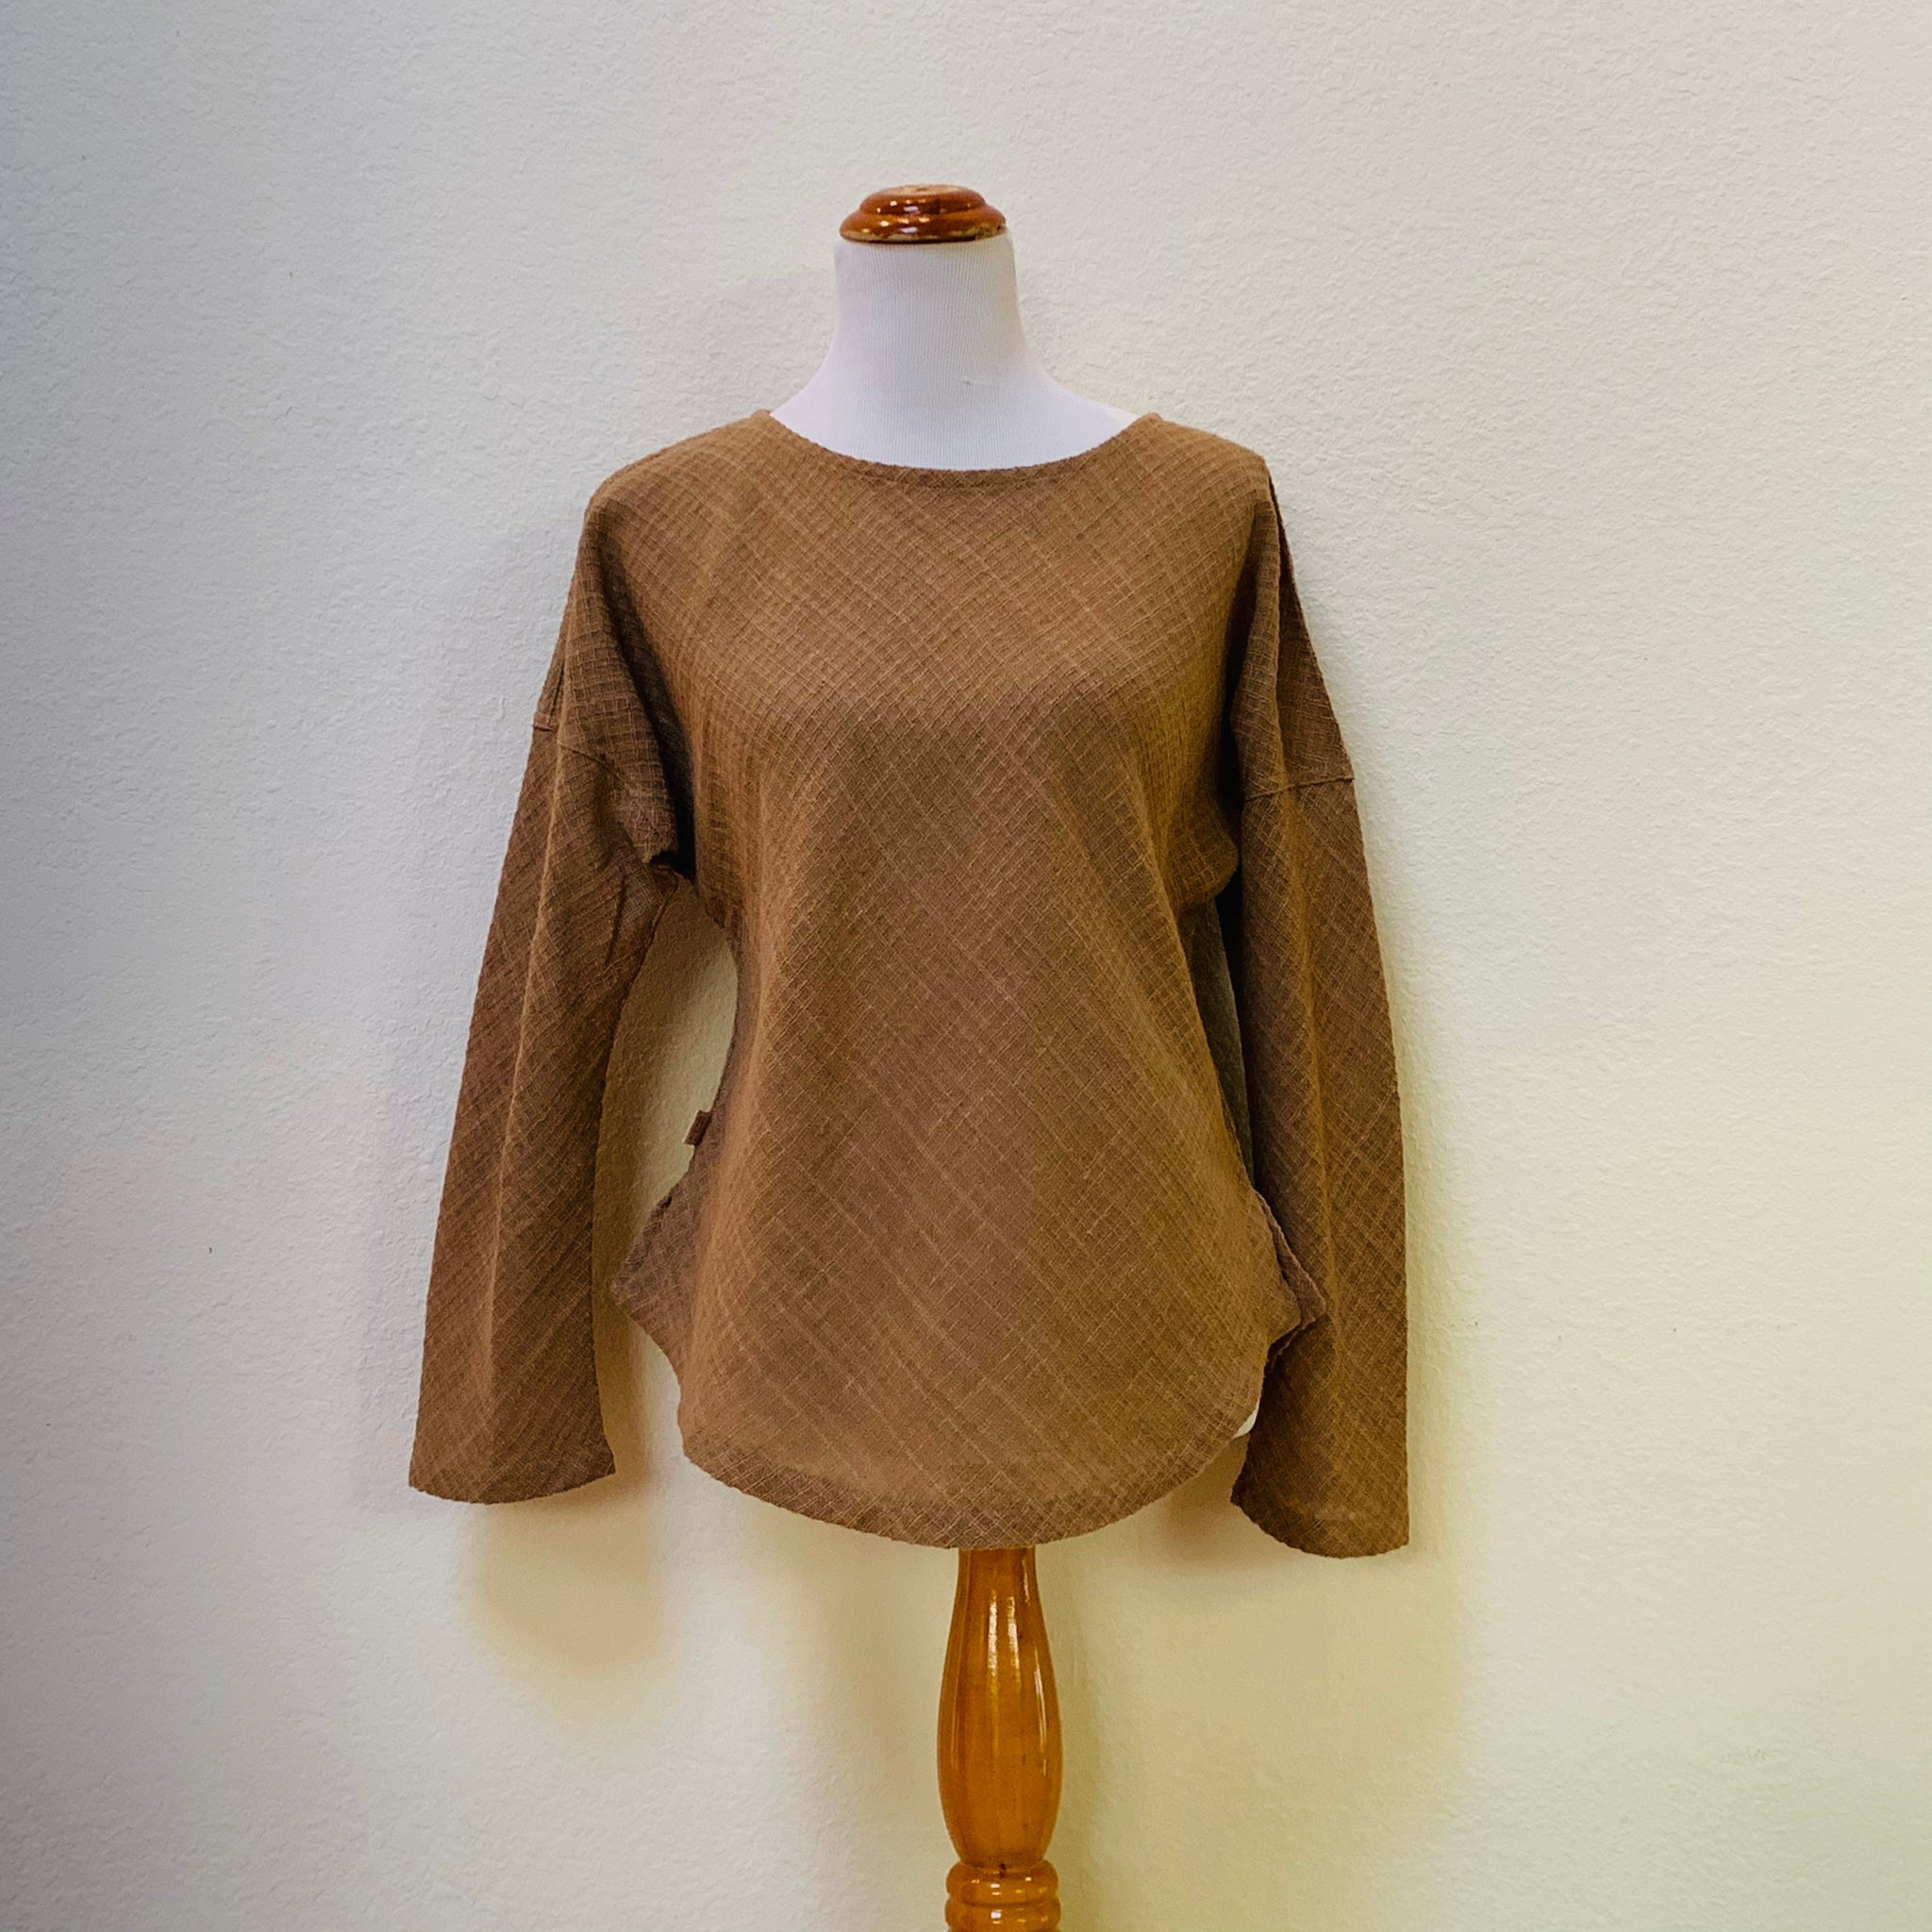 Boat-Neck Long Sleeve Shirt 1115AG 4F - Size 4 - Brown